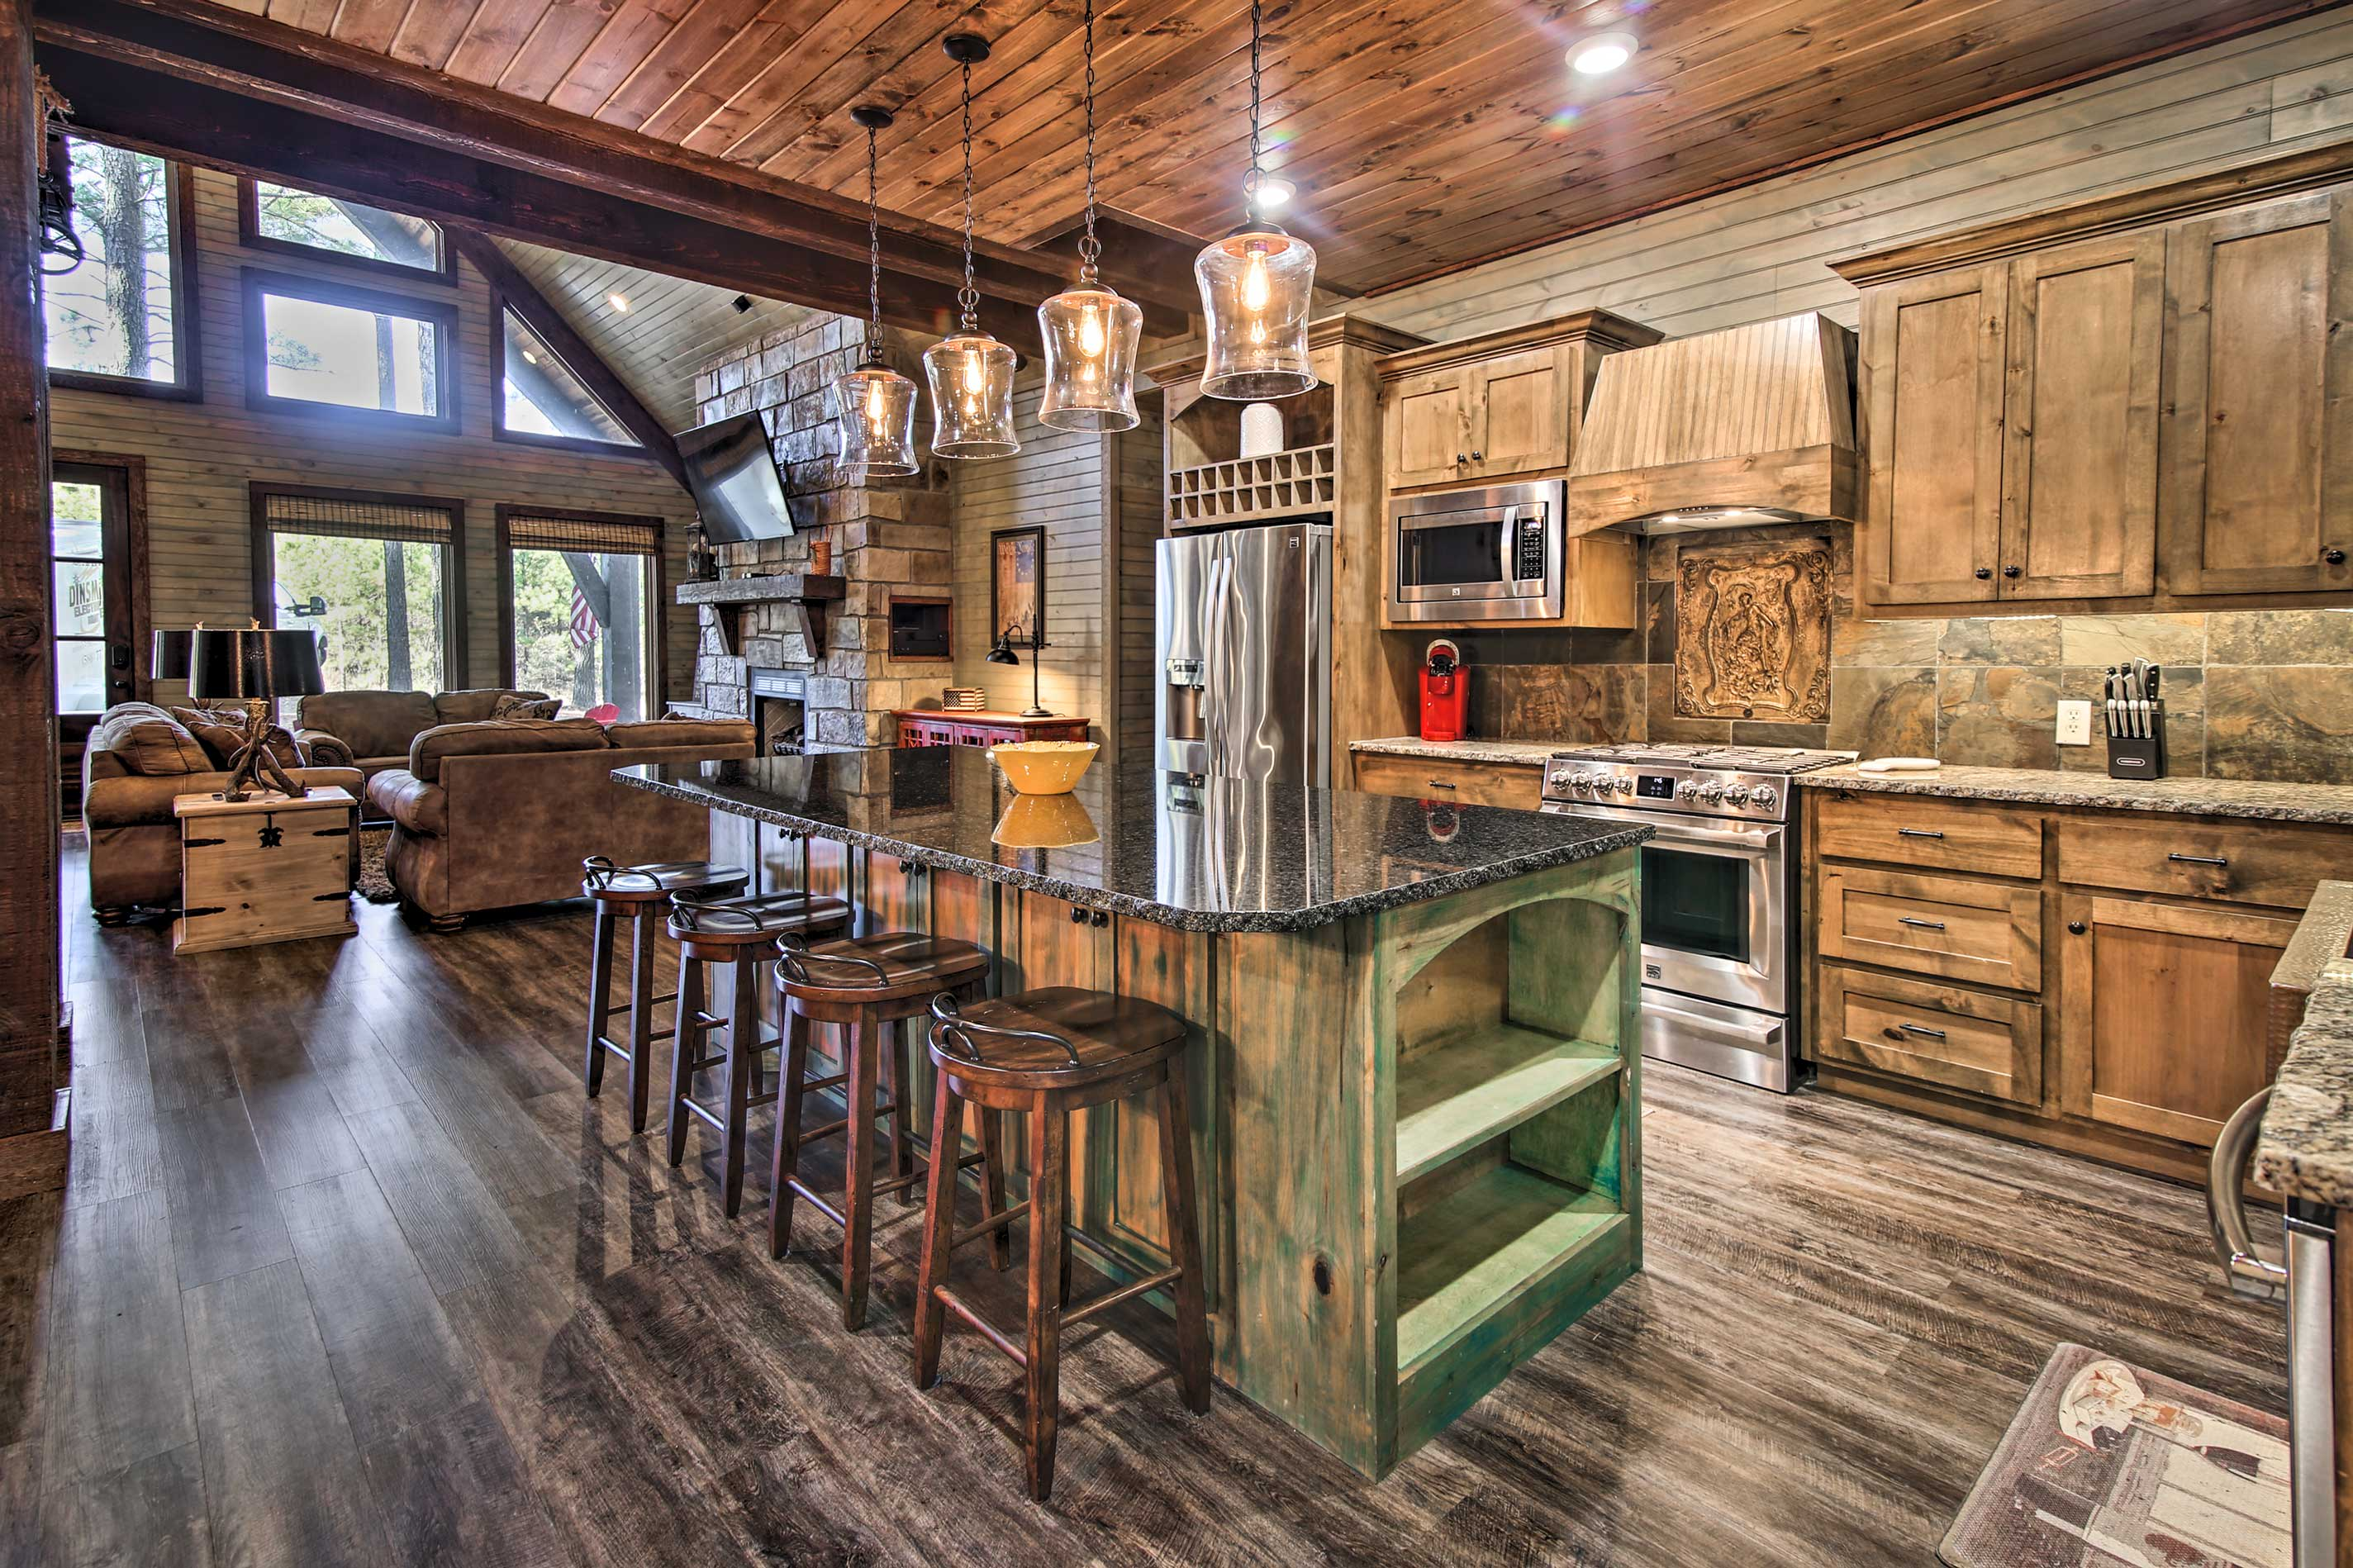 The rustic kitchen is fully equipped.